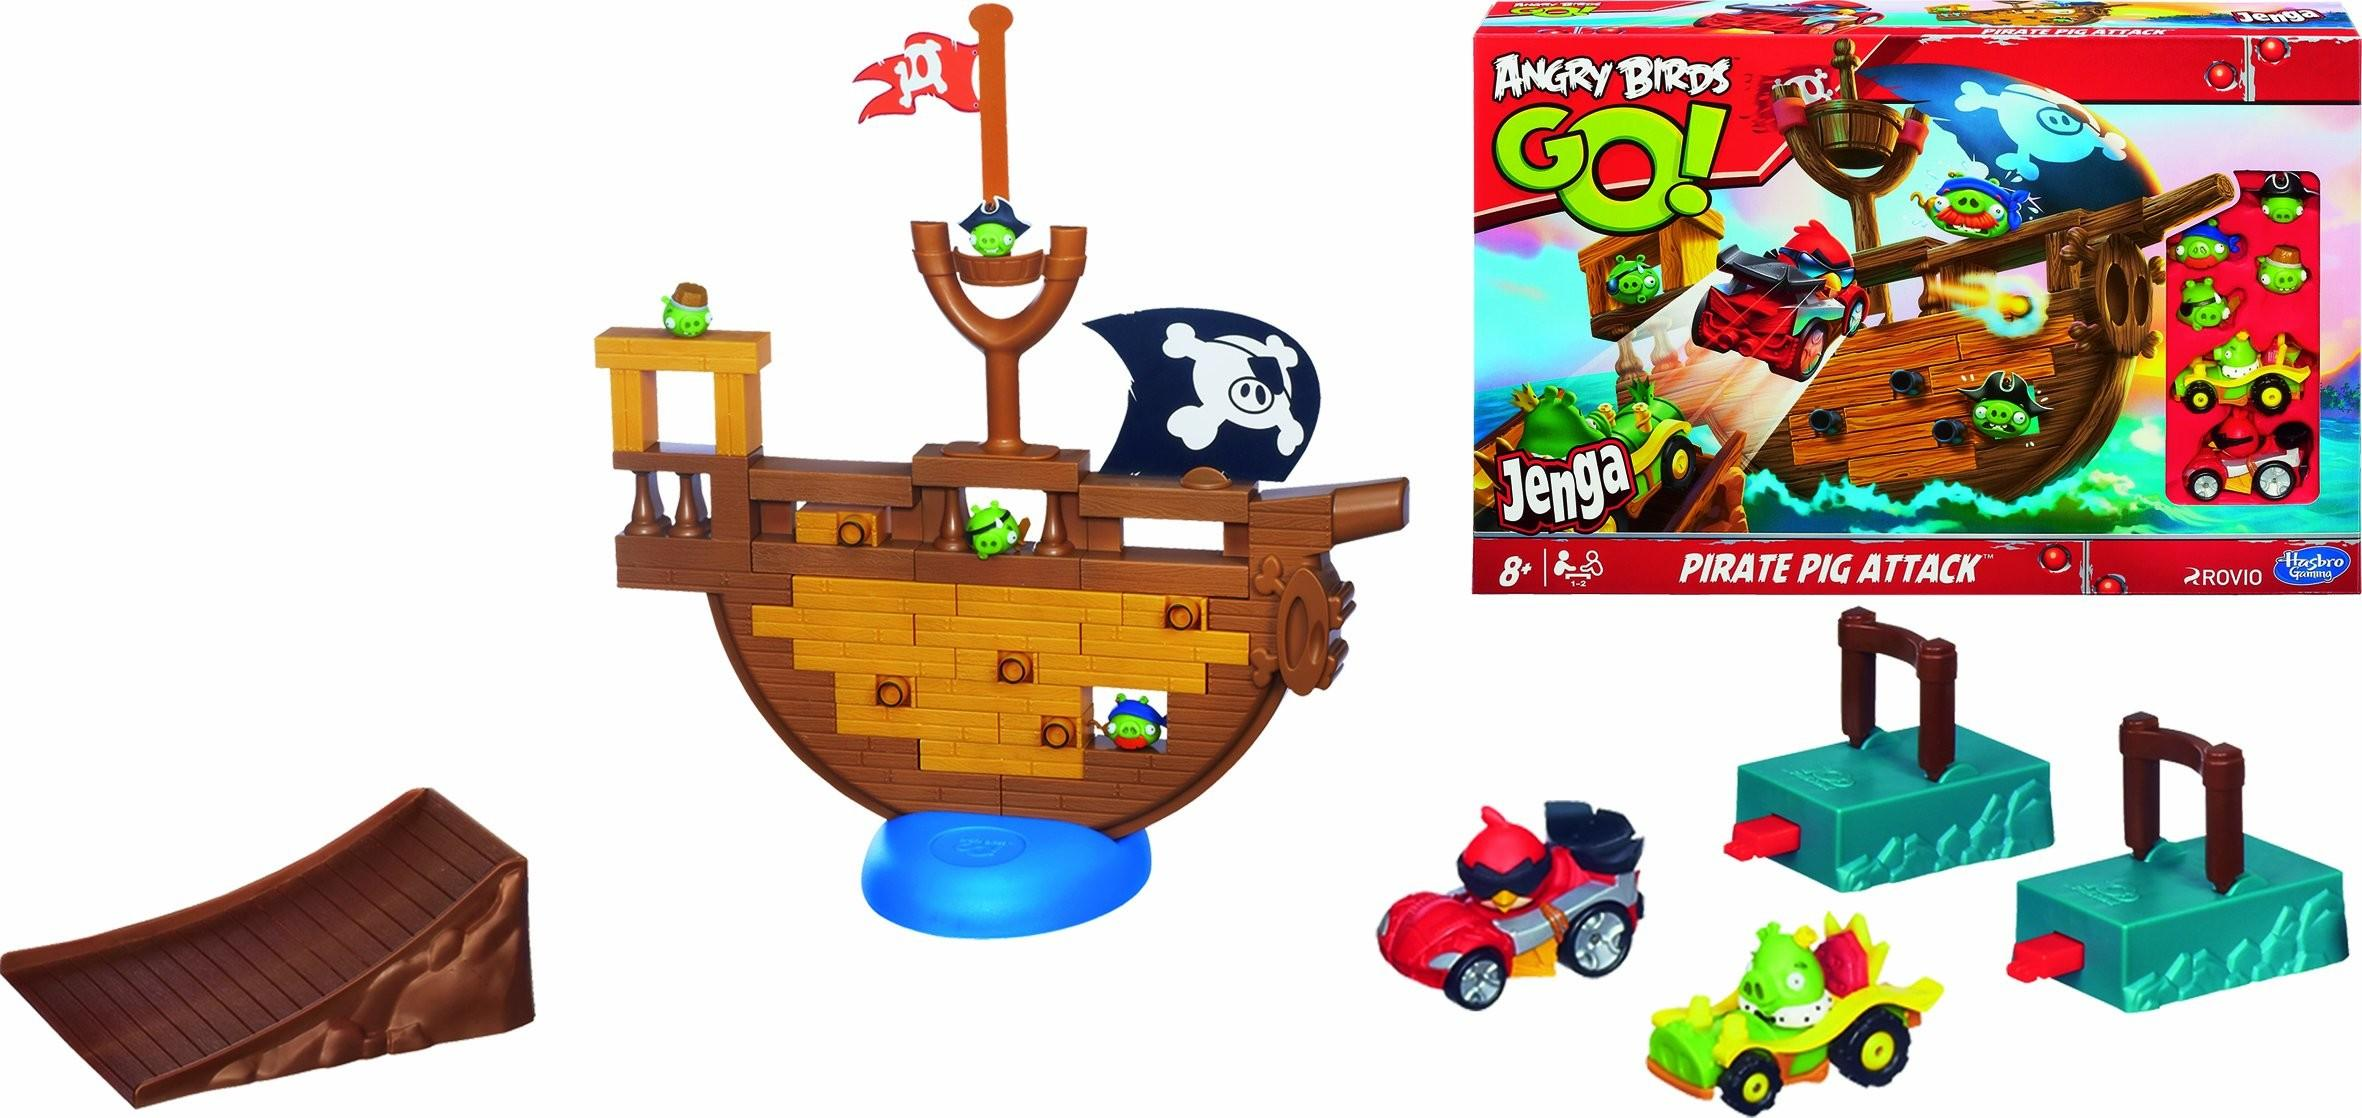 Save Angry Birds Pirate Pig Attack Board Game